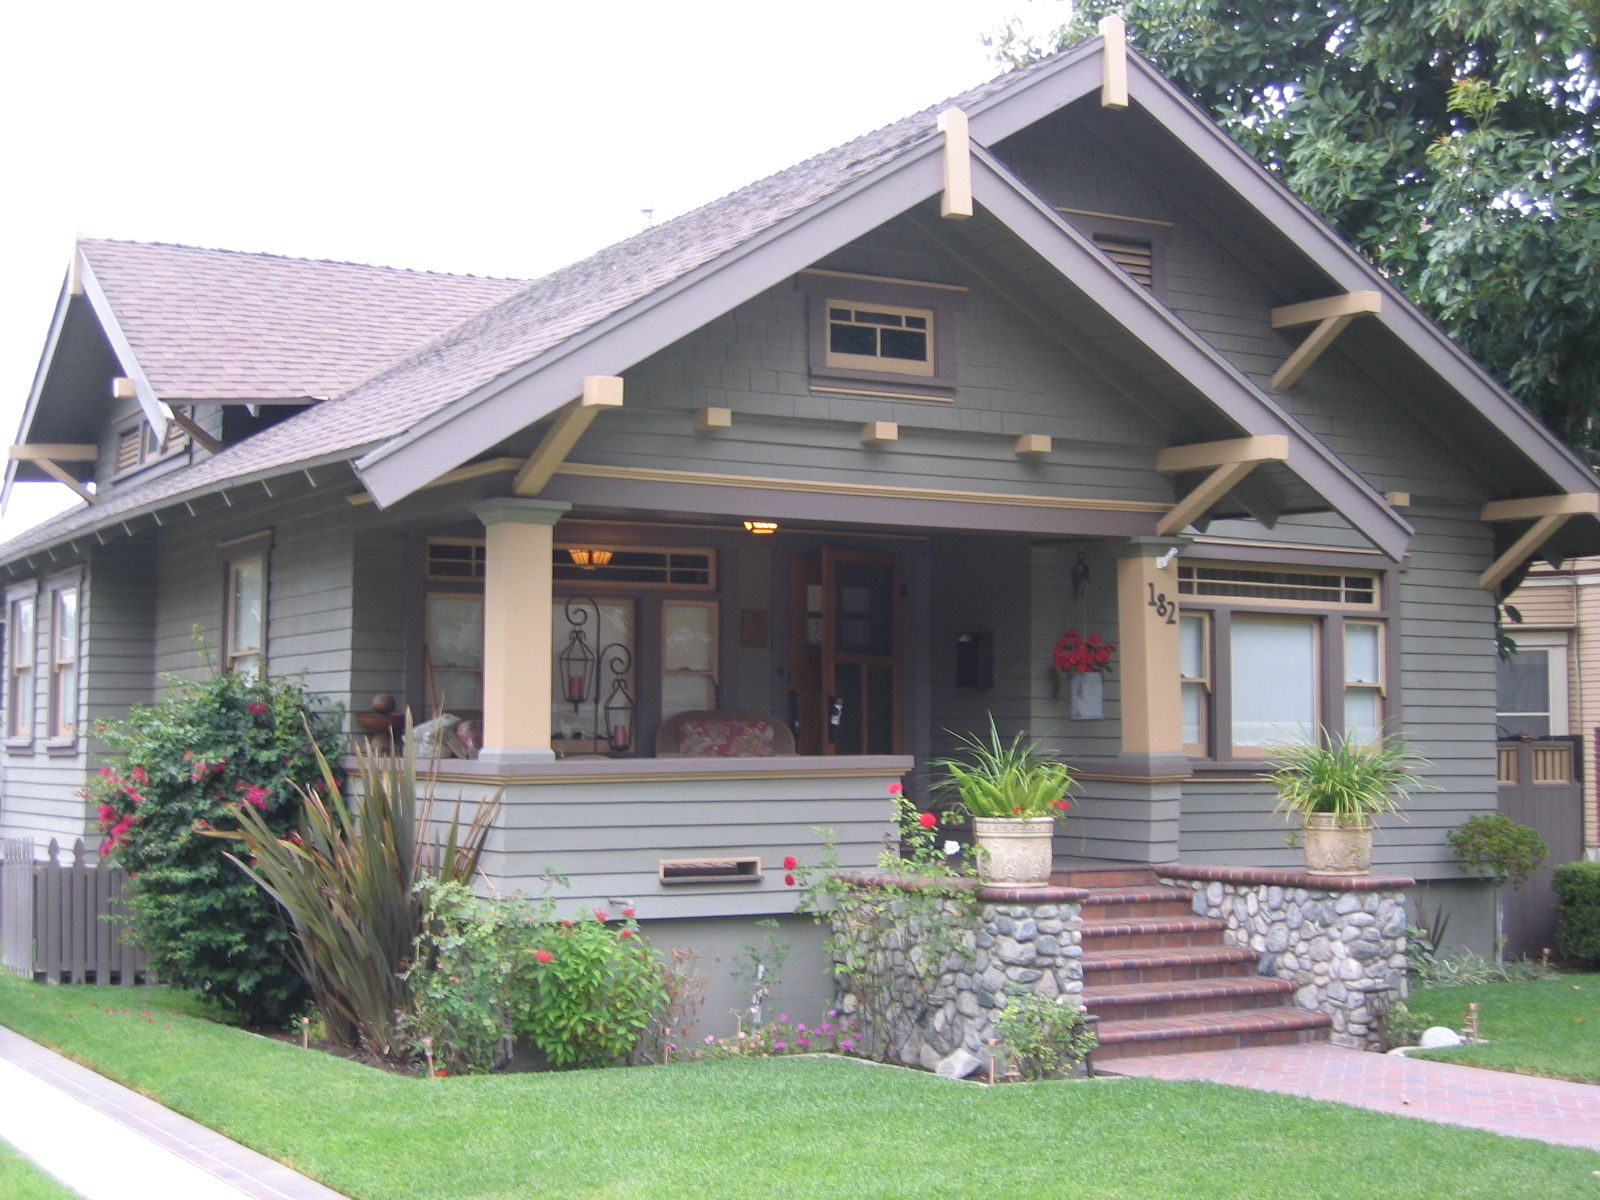 Craftsman house pictures craftsman home style sight for Classic house styles